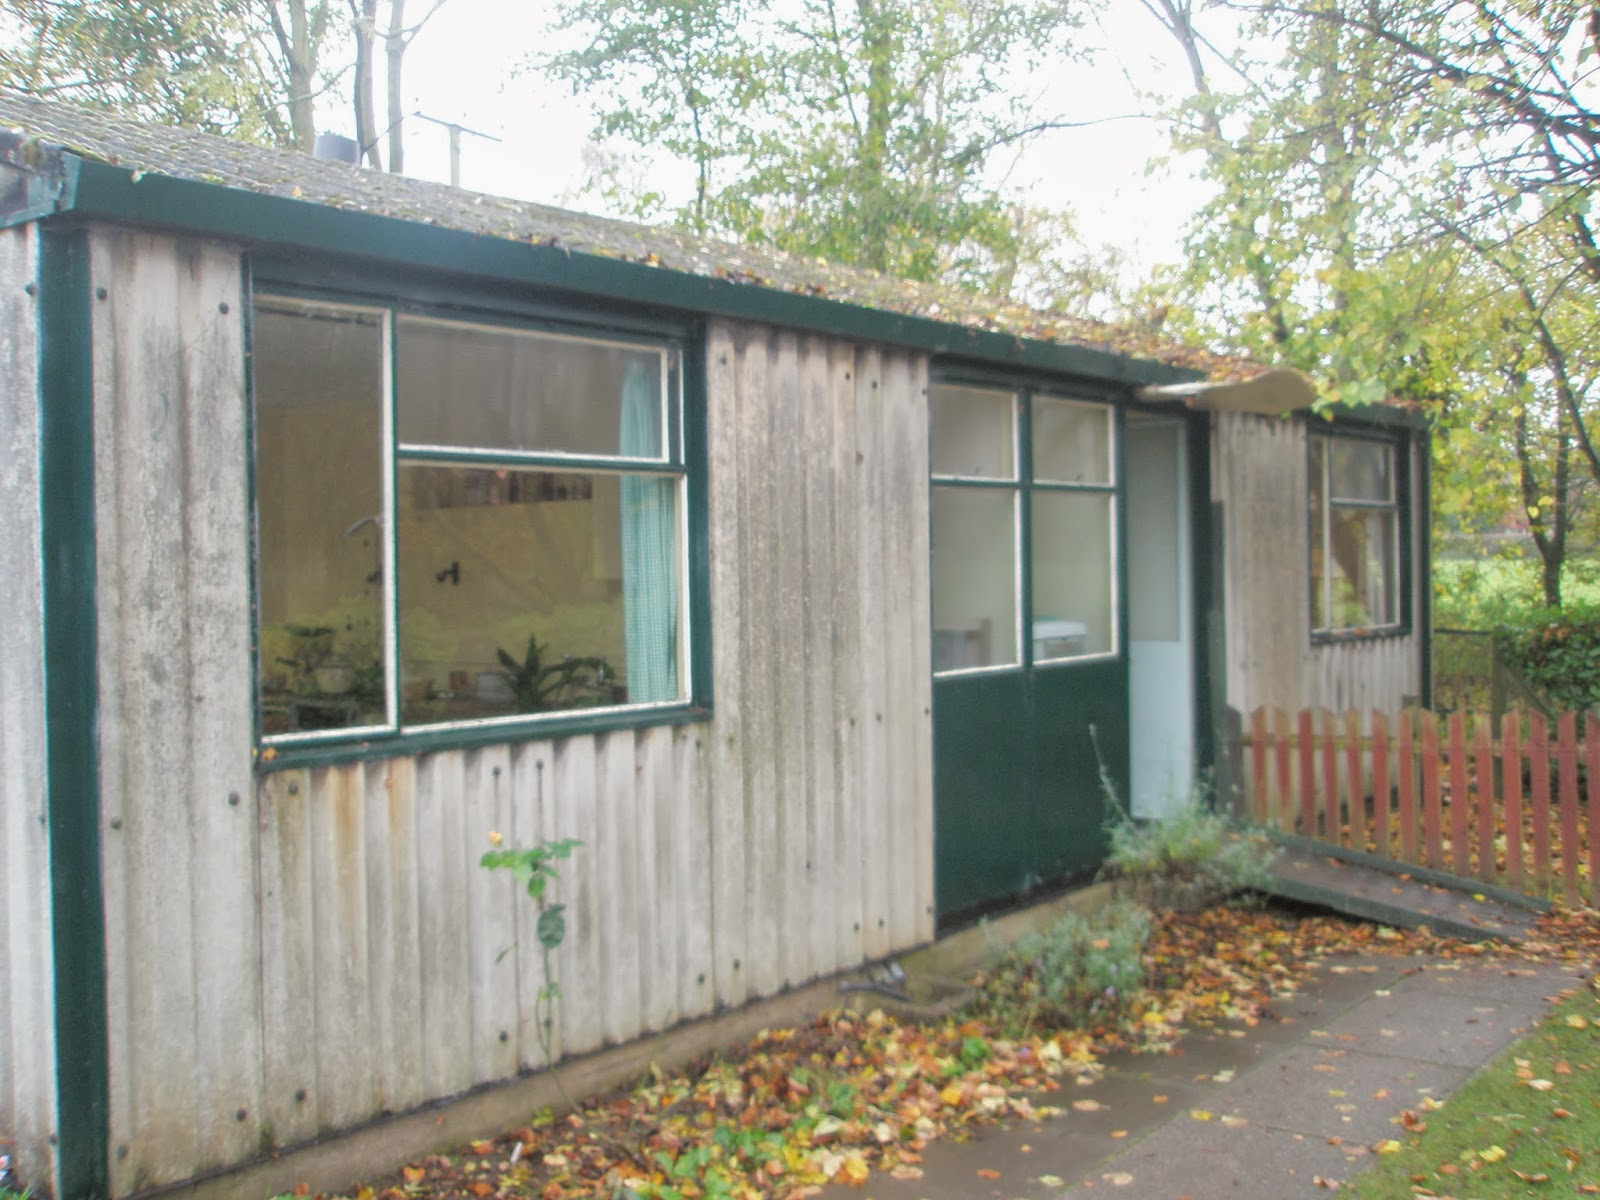 Surveying Property 1940 S Prefab Houses Simple But